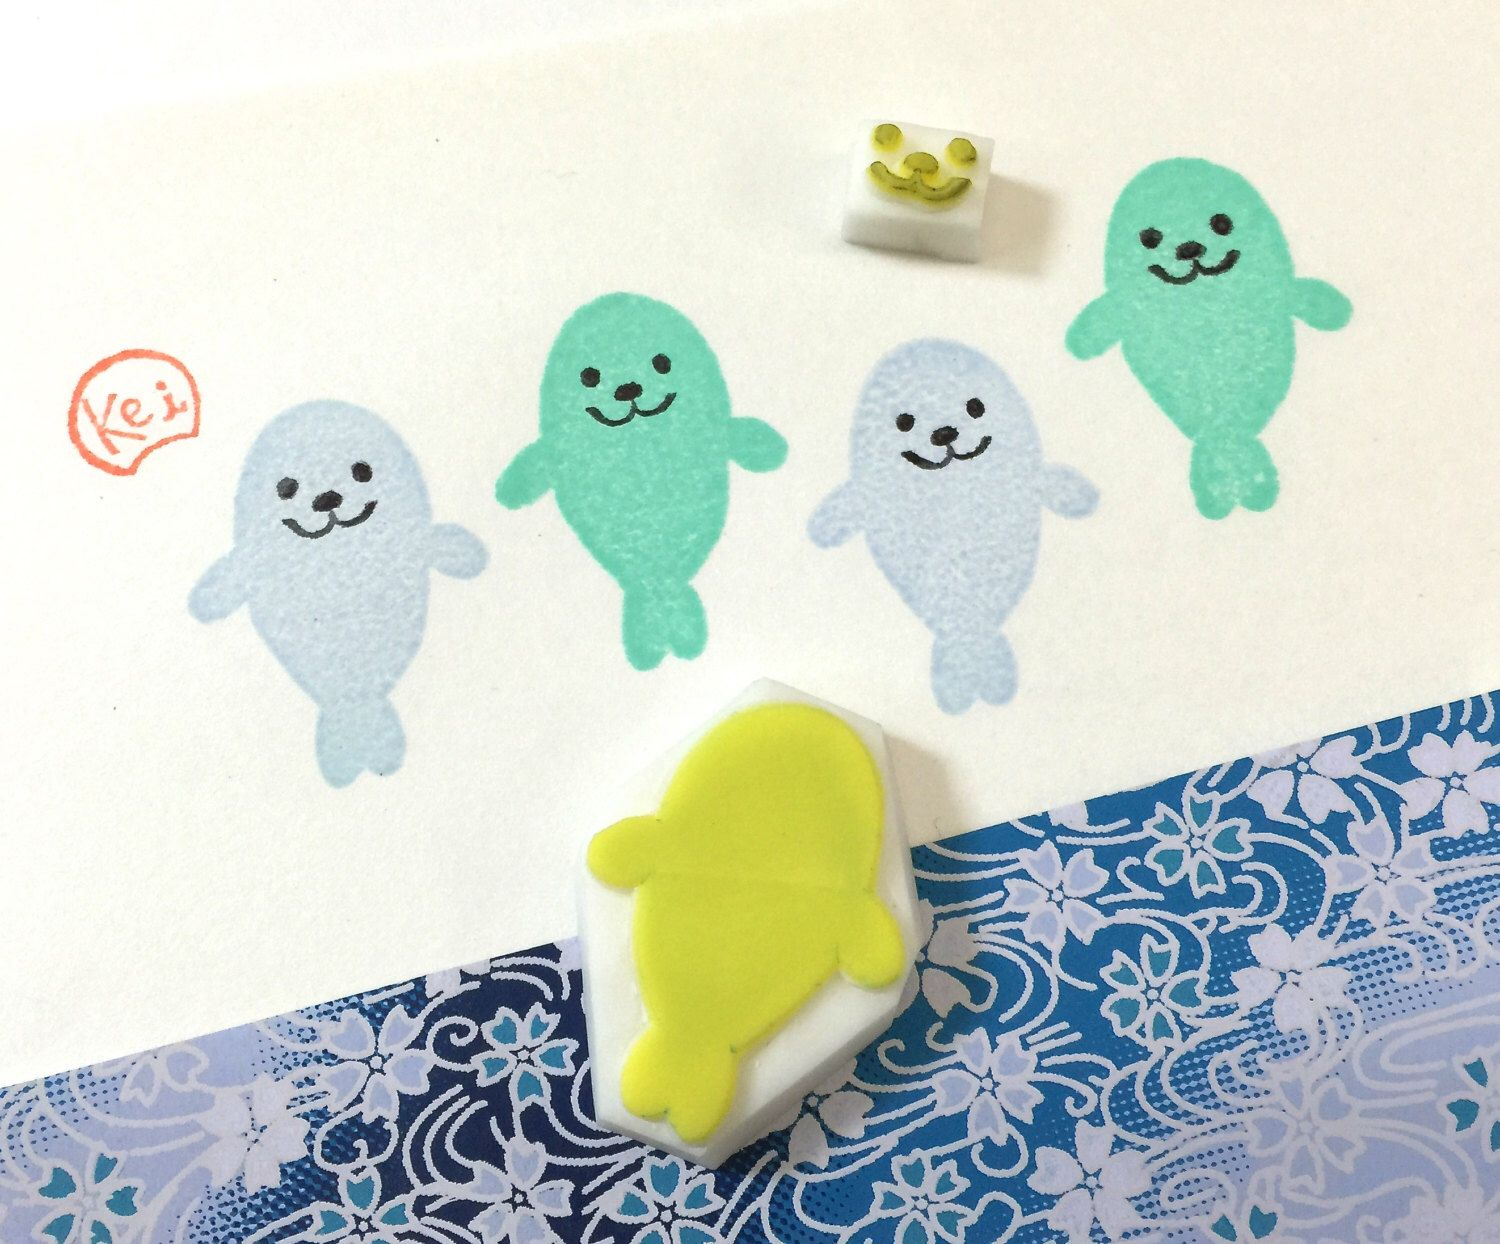 HAPPY SEA SEAL - Hand Carved Rubber Stamps/Zoo/Animals/Funny by KeiWorkshop on Etsy https://www.etsy.com/hk-en/listing/289433905/happy-sea-seal-hand-carved-rubber